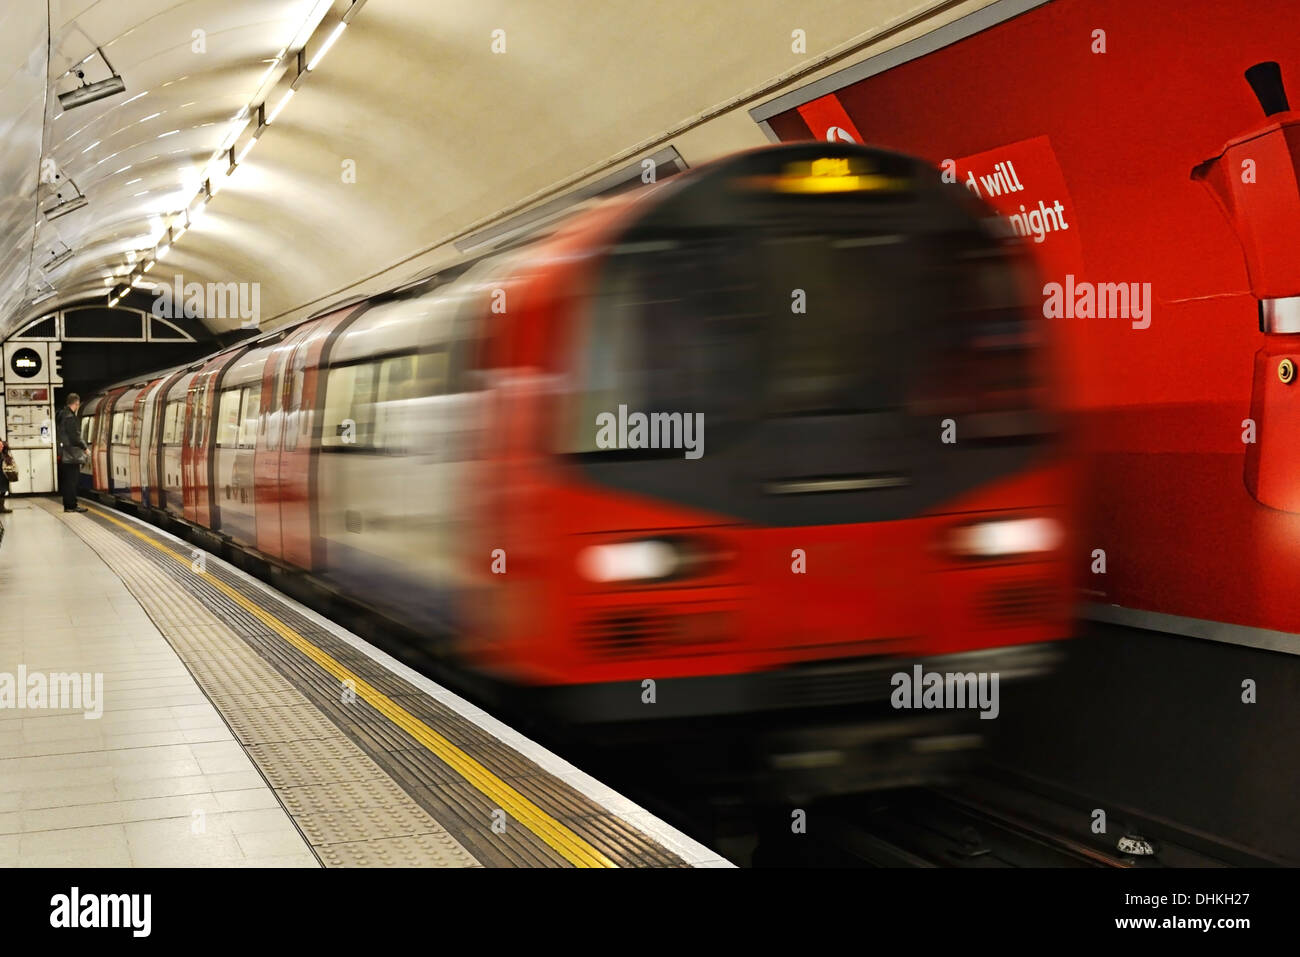 Métro de Londres Train tirant dans une gare, Charing Cross, Londres, Royaume-Uni. Photo Stock